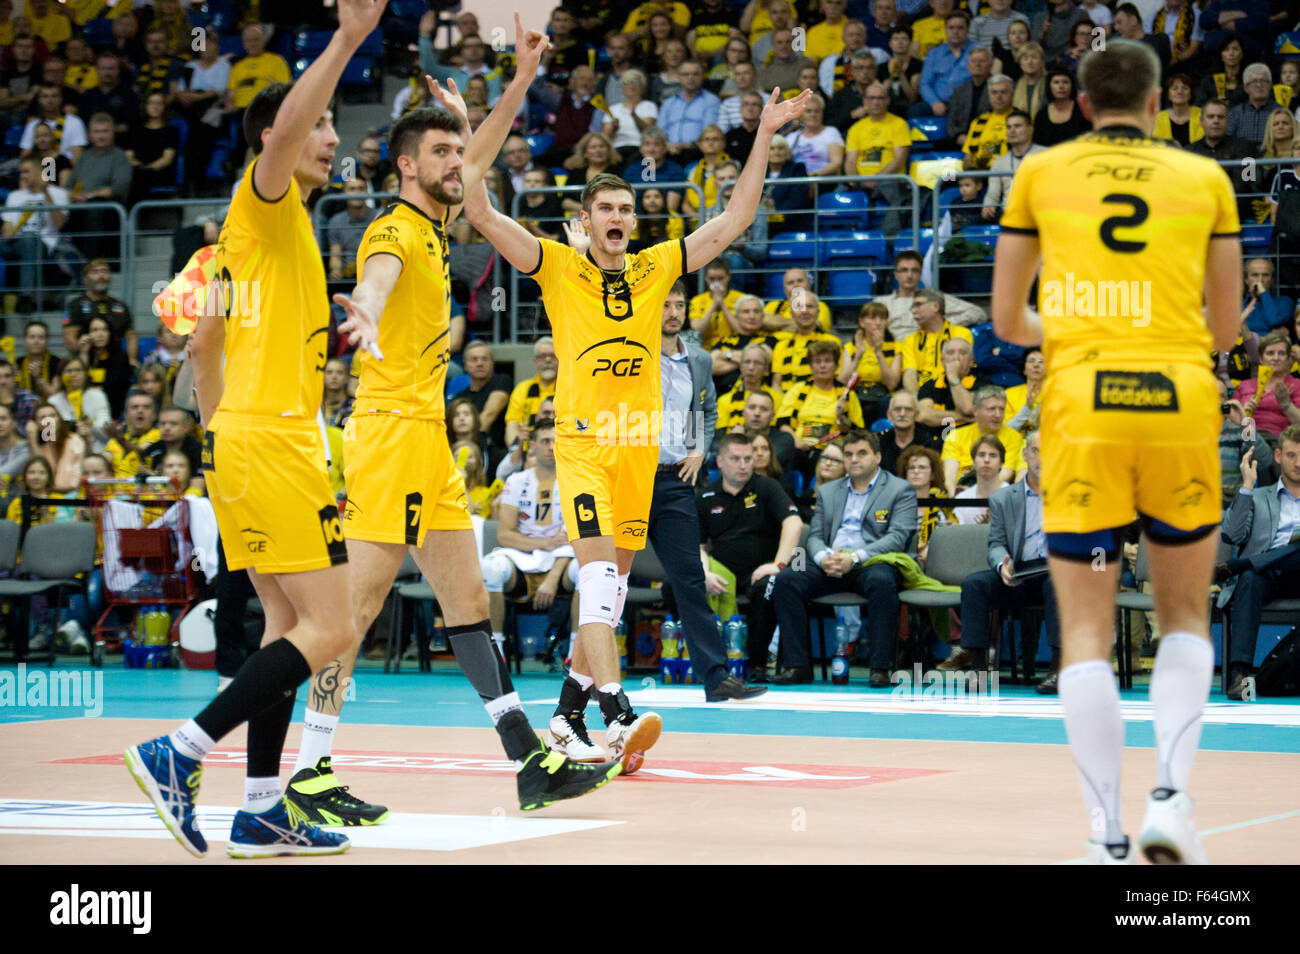 Belchatow, Poland. 11th November 2015. Team PGE Skra Belchatow pictured during the game with Asseco Resovia Rzeszow - Stock Image